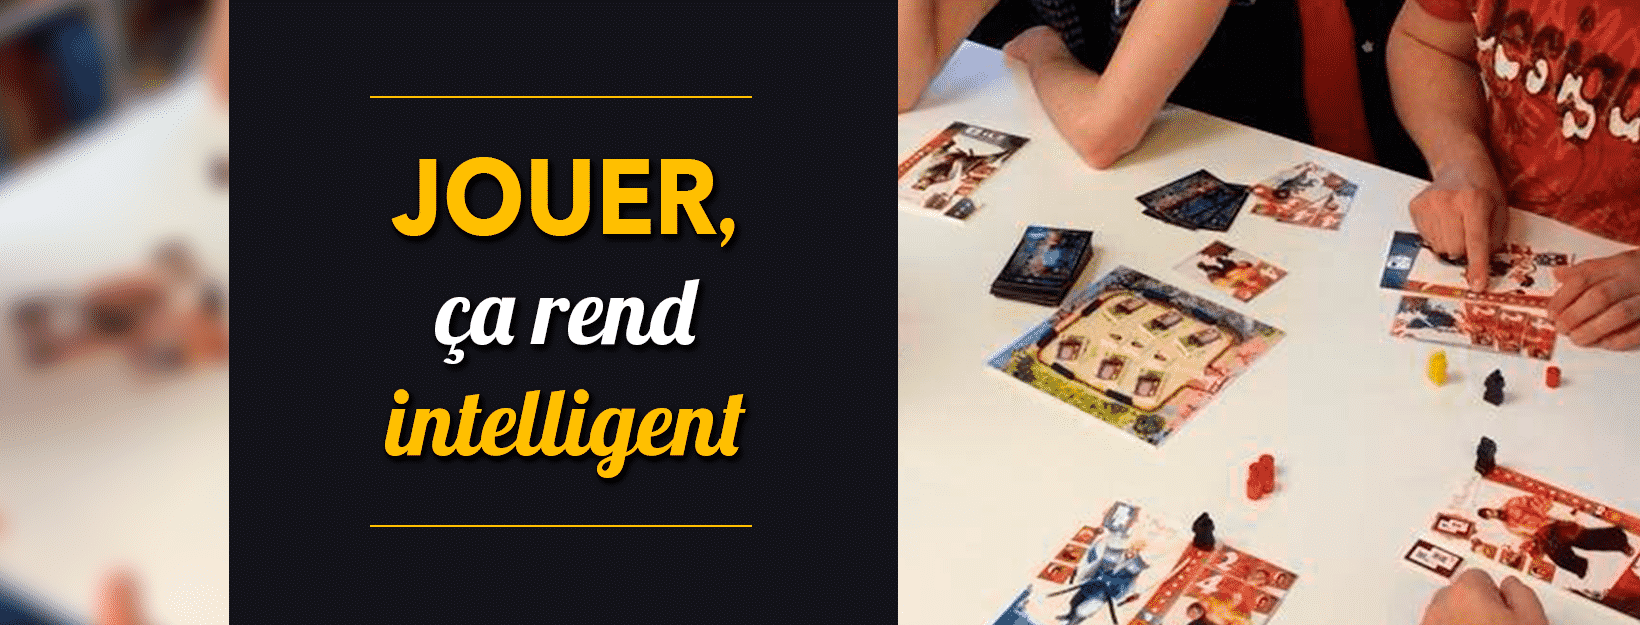 le jeu rend intelligent - Pimeeple